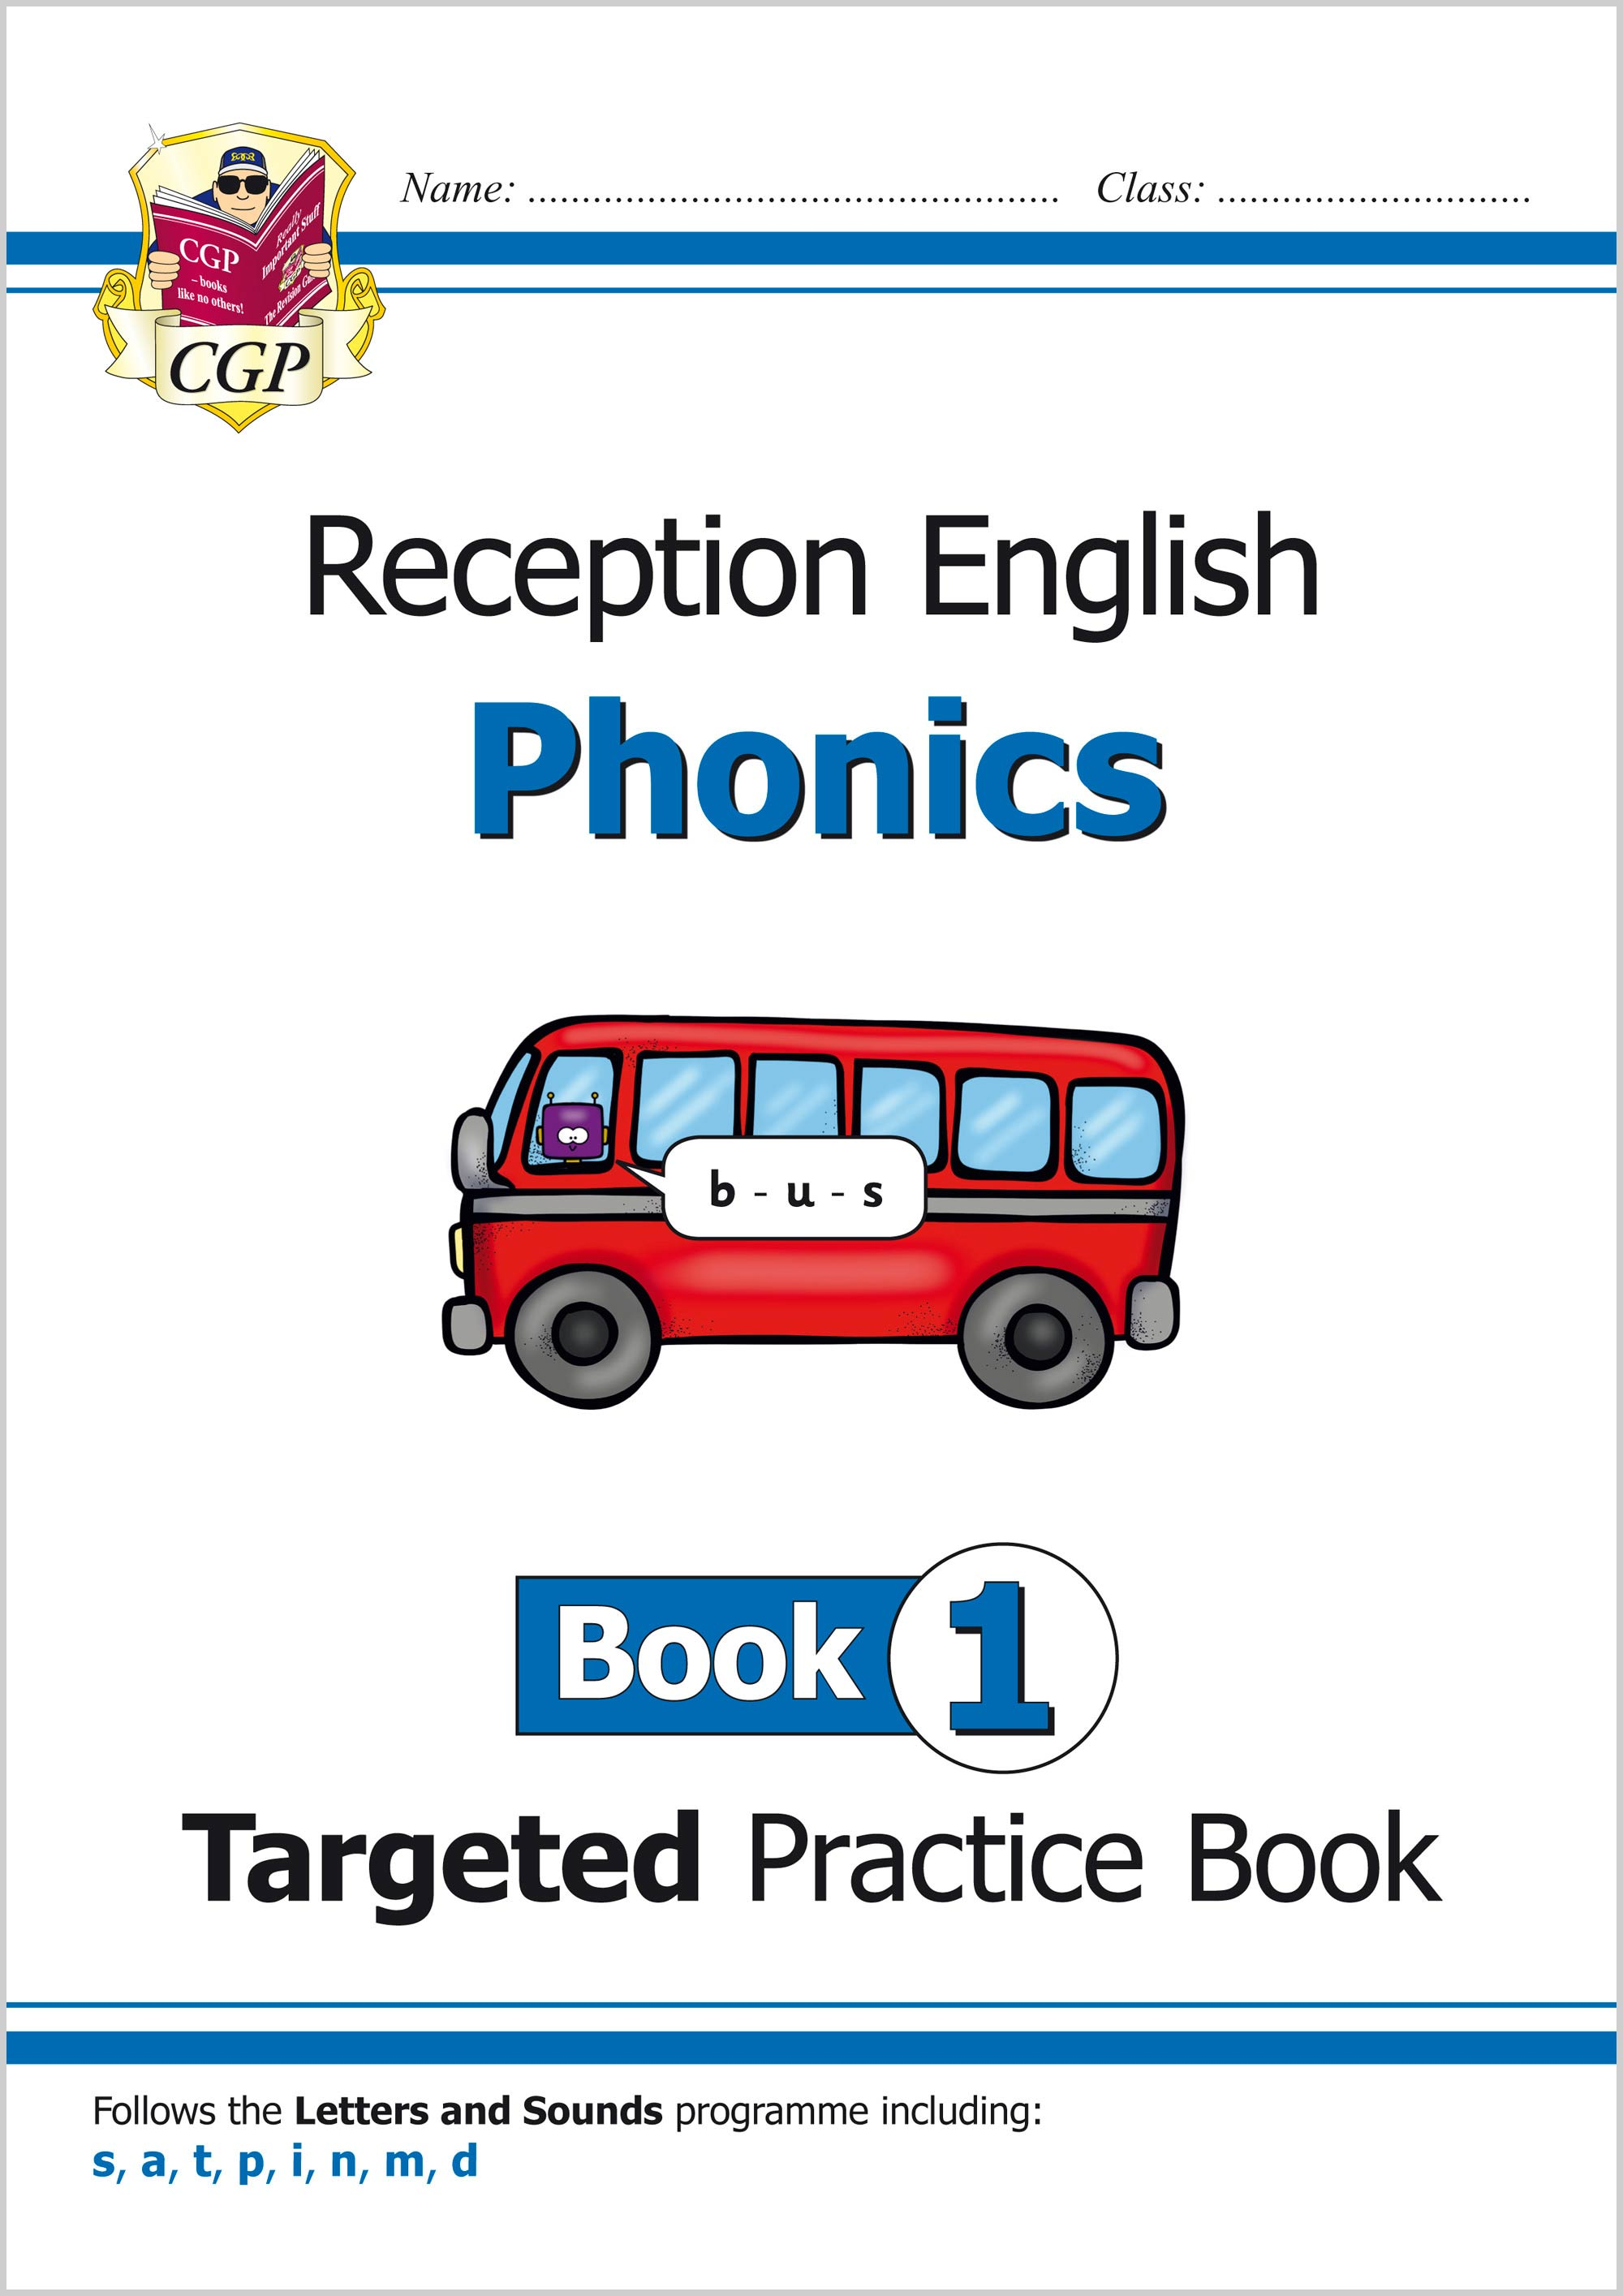 EROW111 - New English Targeted Practice Book: Phonics - Reception Book 1